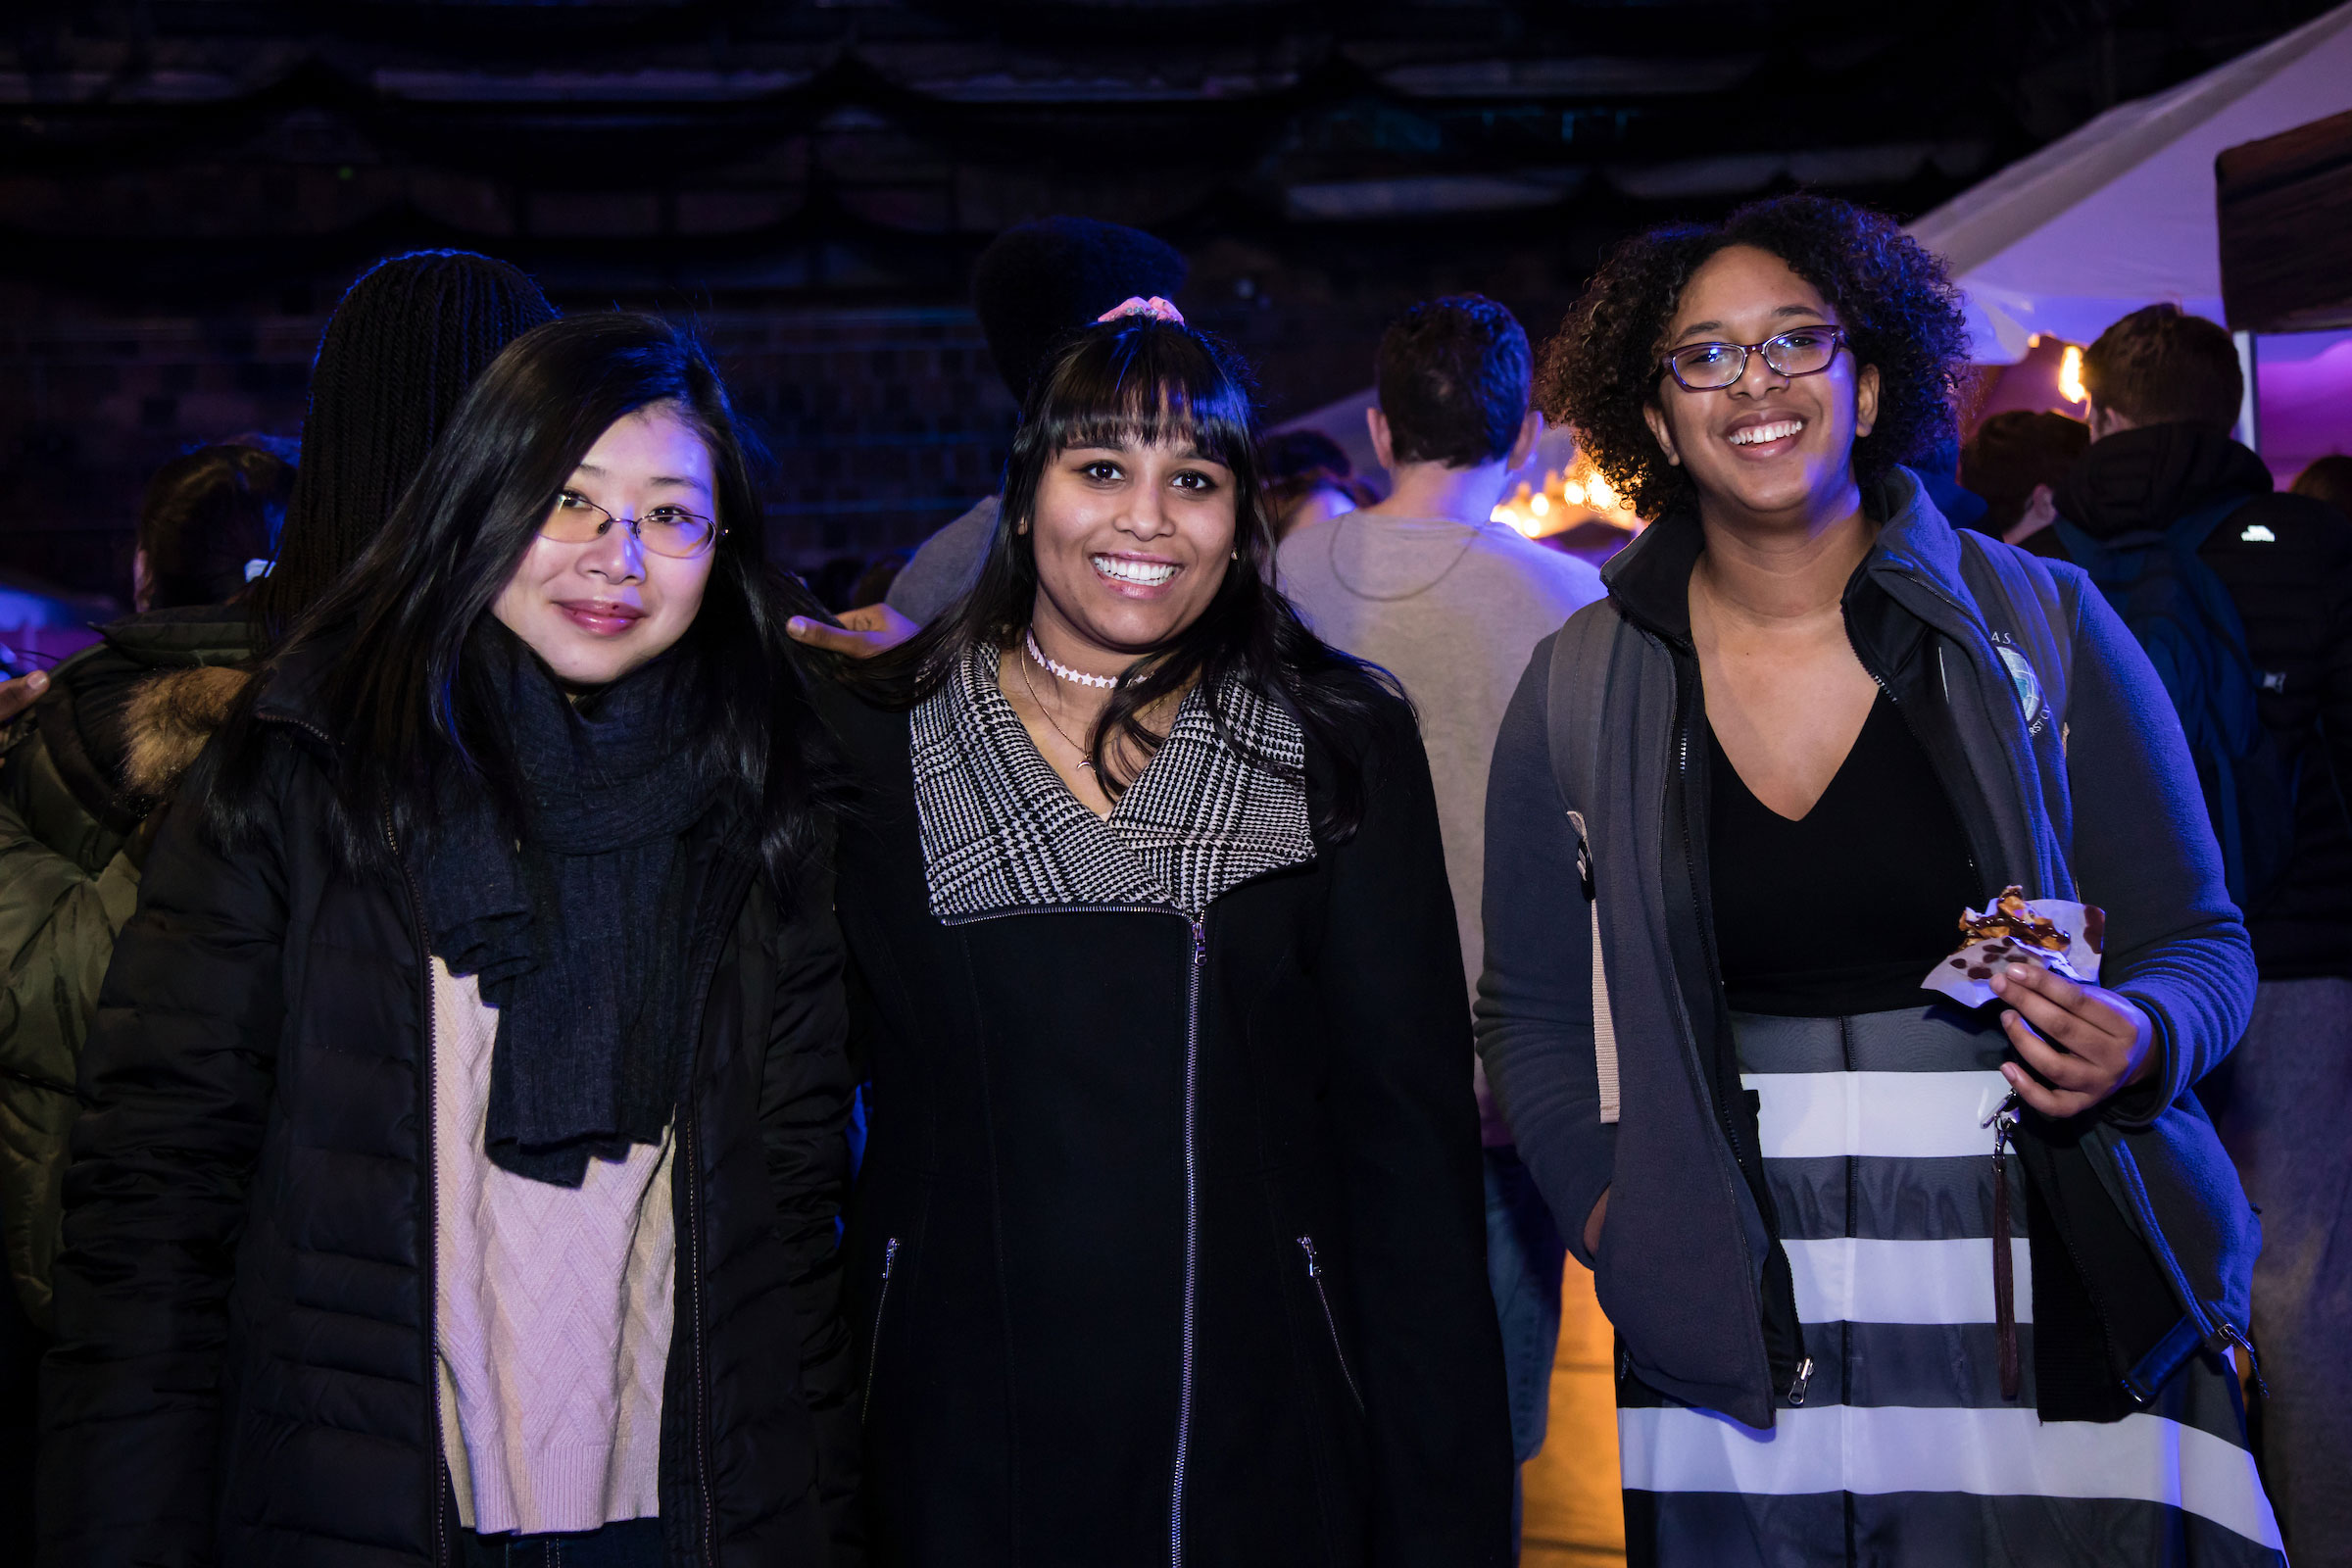 Three women pose for the camera at Winter Fest